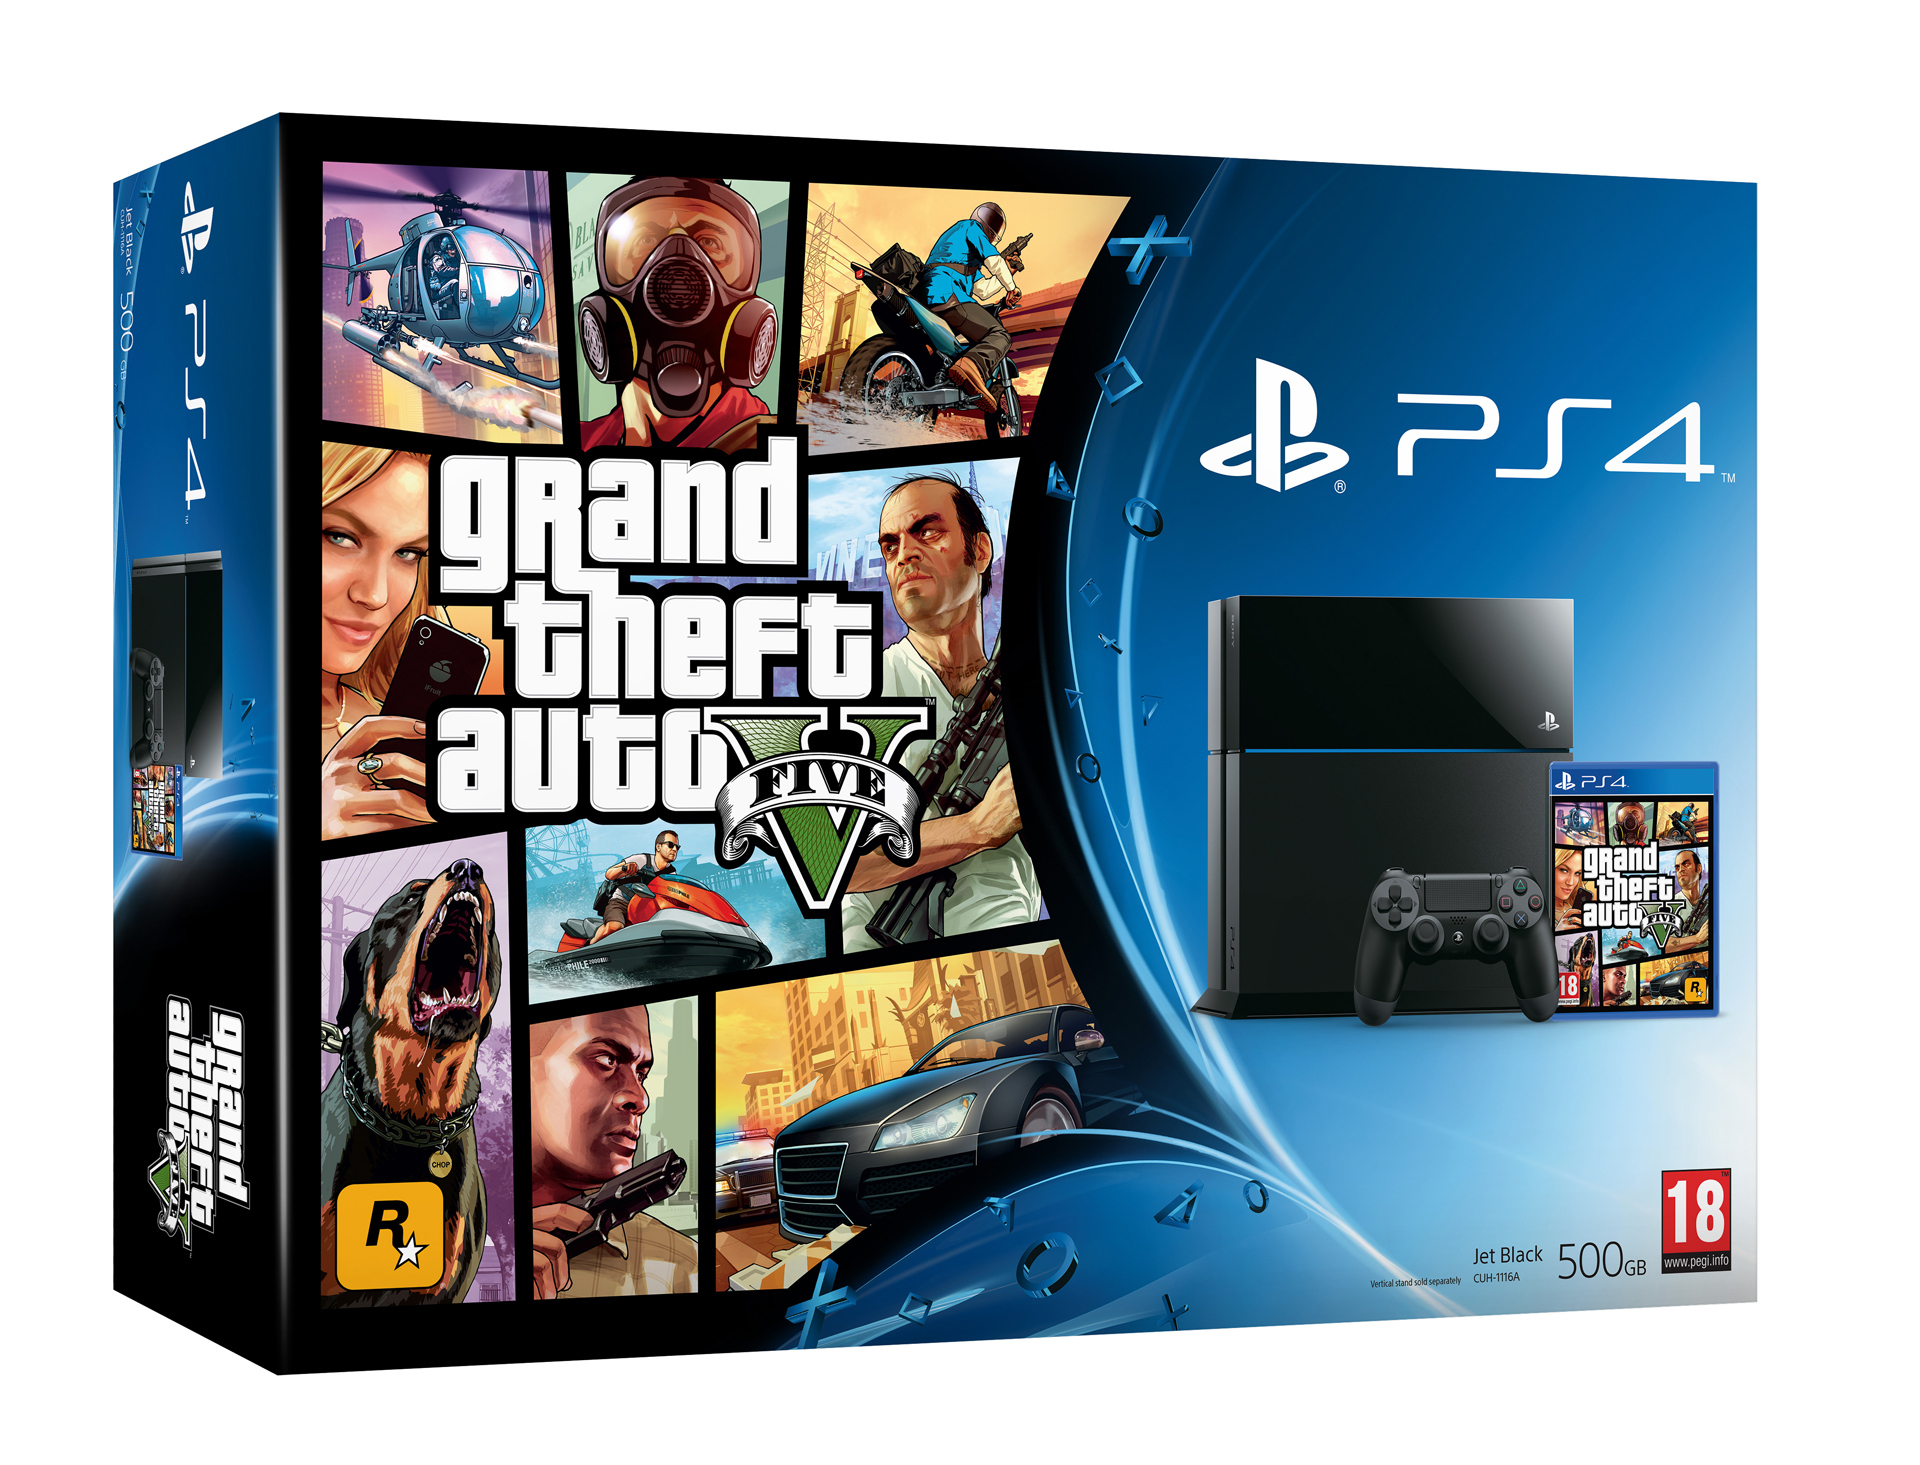 PS 4 500 GB Grand Theft Auto V Bundle Jet Black